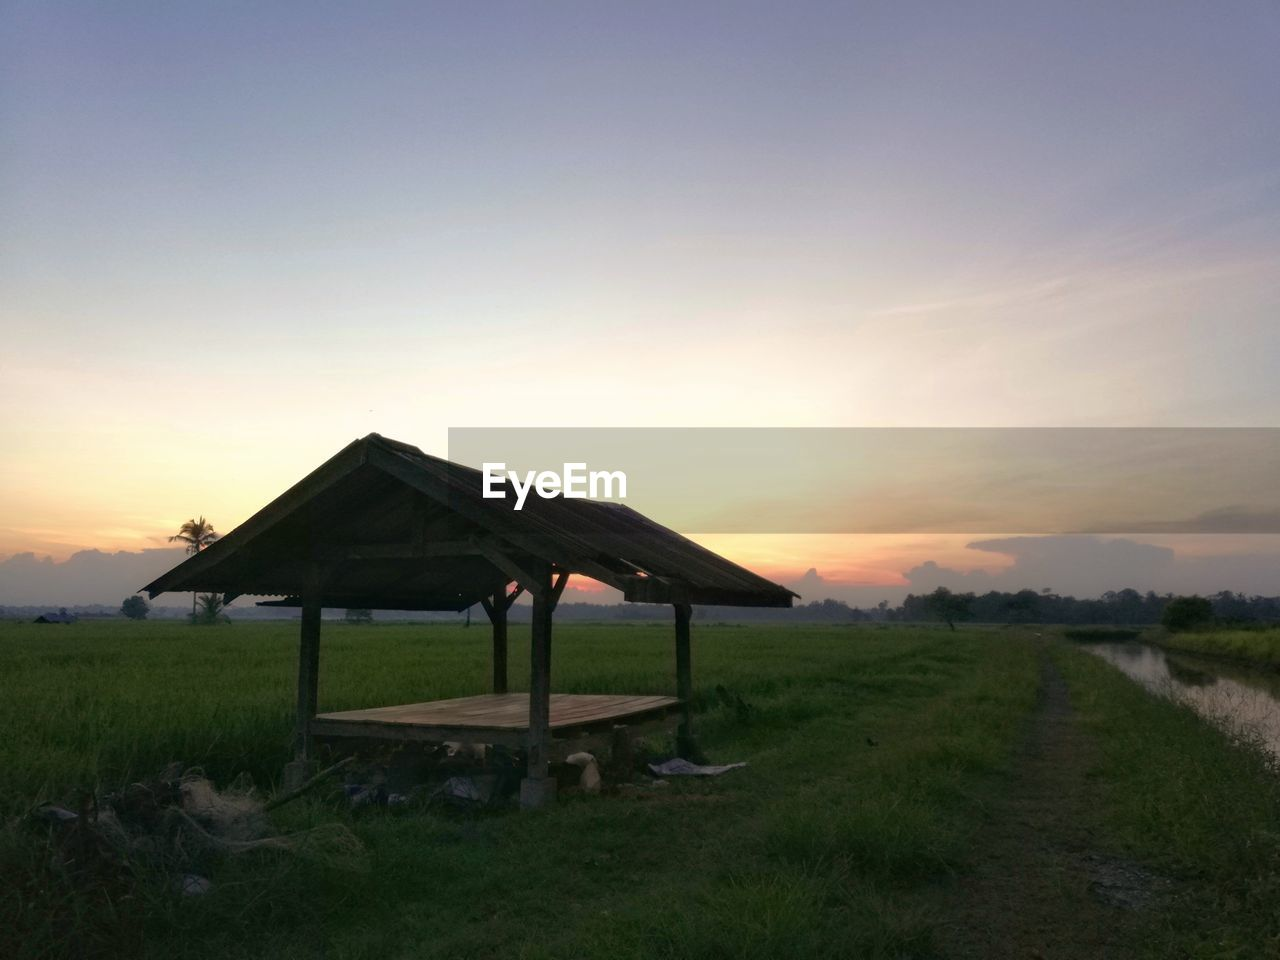 sky, sunset, grass, architecture, land, nature, field, landscape, built structure, environment, plant, tranquility, tranquil scene, beauty in nature, no people, scenics - nature, orange color, copy space, building exterior, agriculture, outdoors, sun